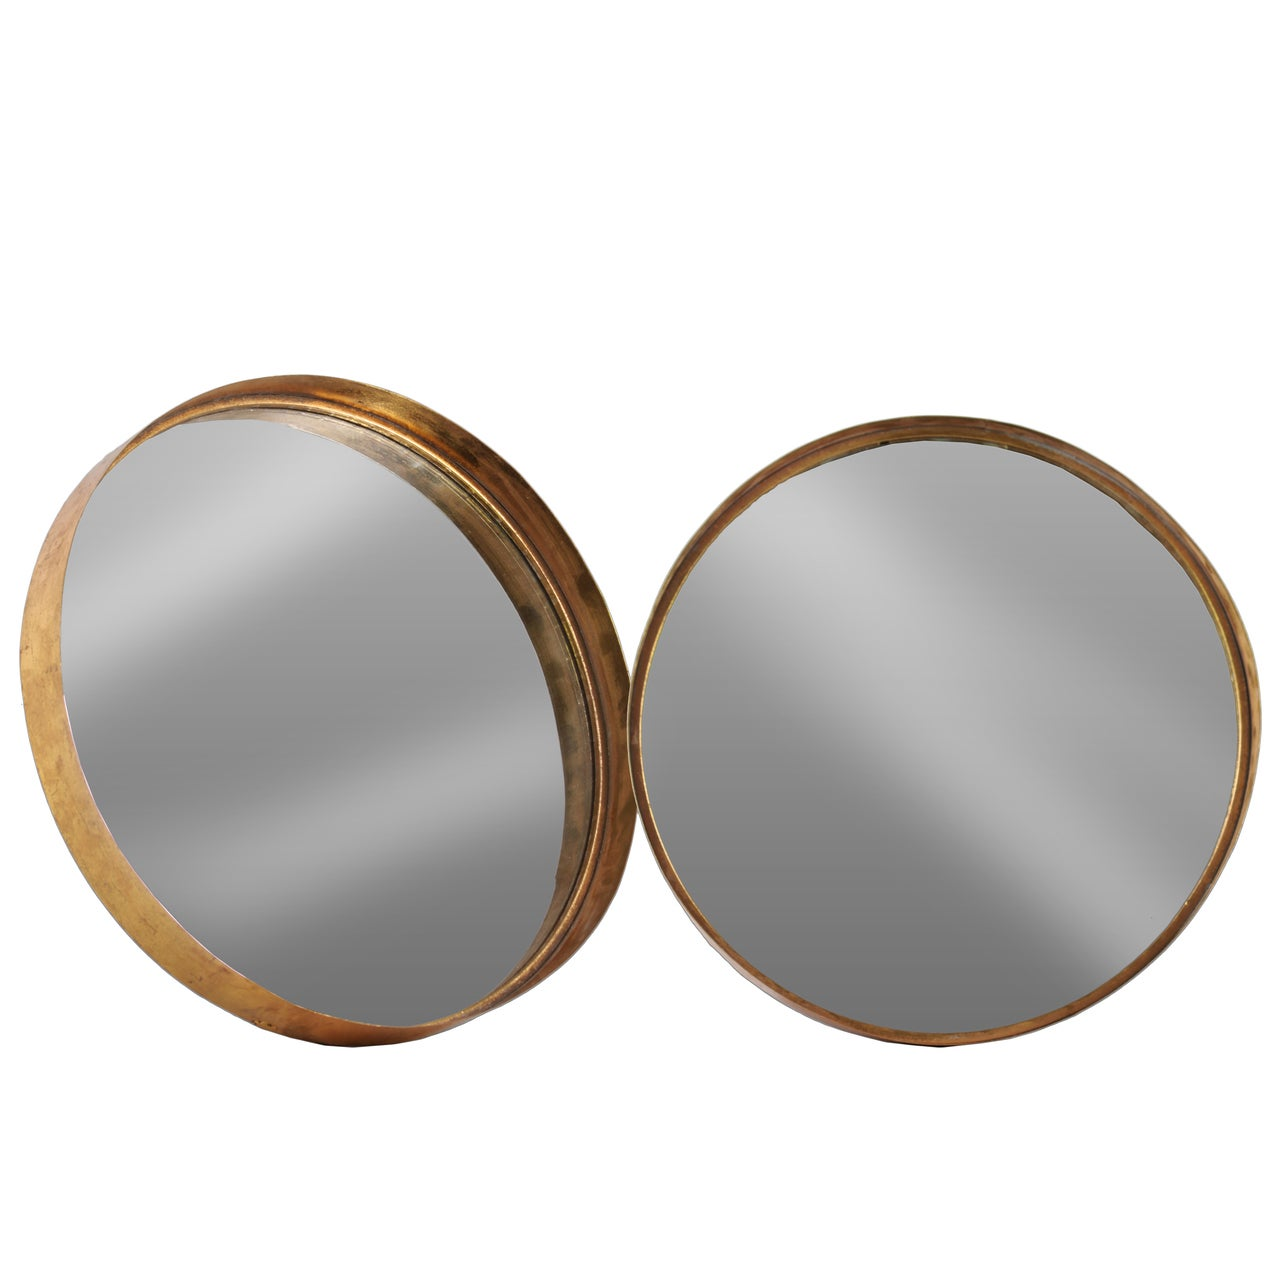 Shop Antique Rose Gold Tarnished Metal Round Wall Mirror Set Of 2 Overstock 12408763